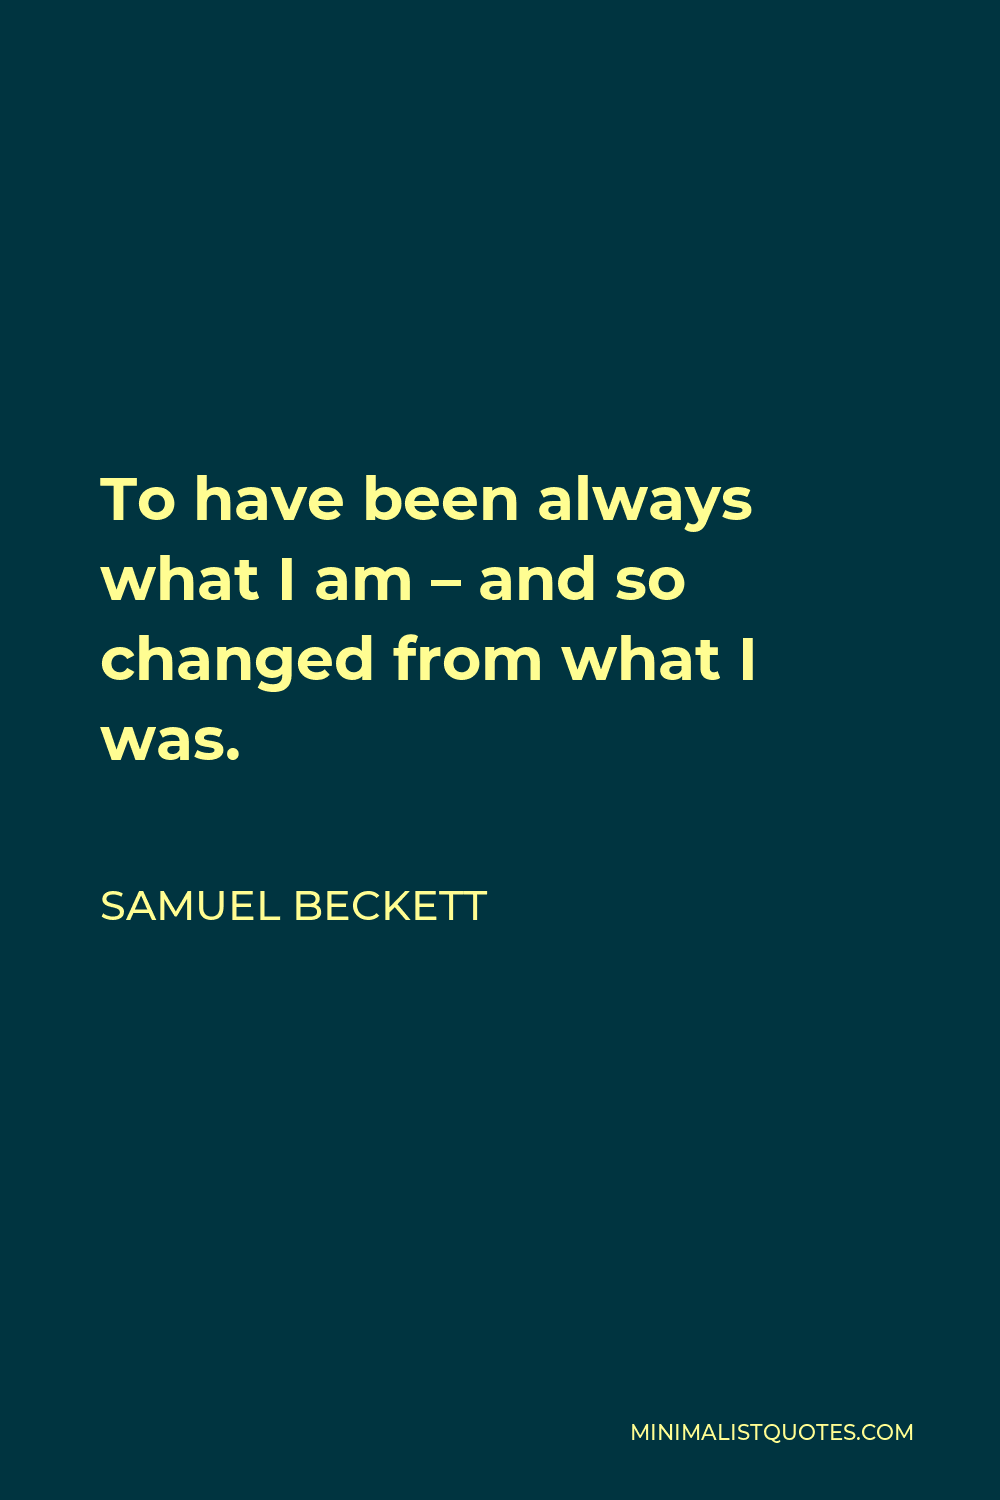 Samuel Beckett Quote - To have been always what I am – and so changed from what I was.